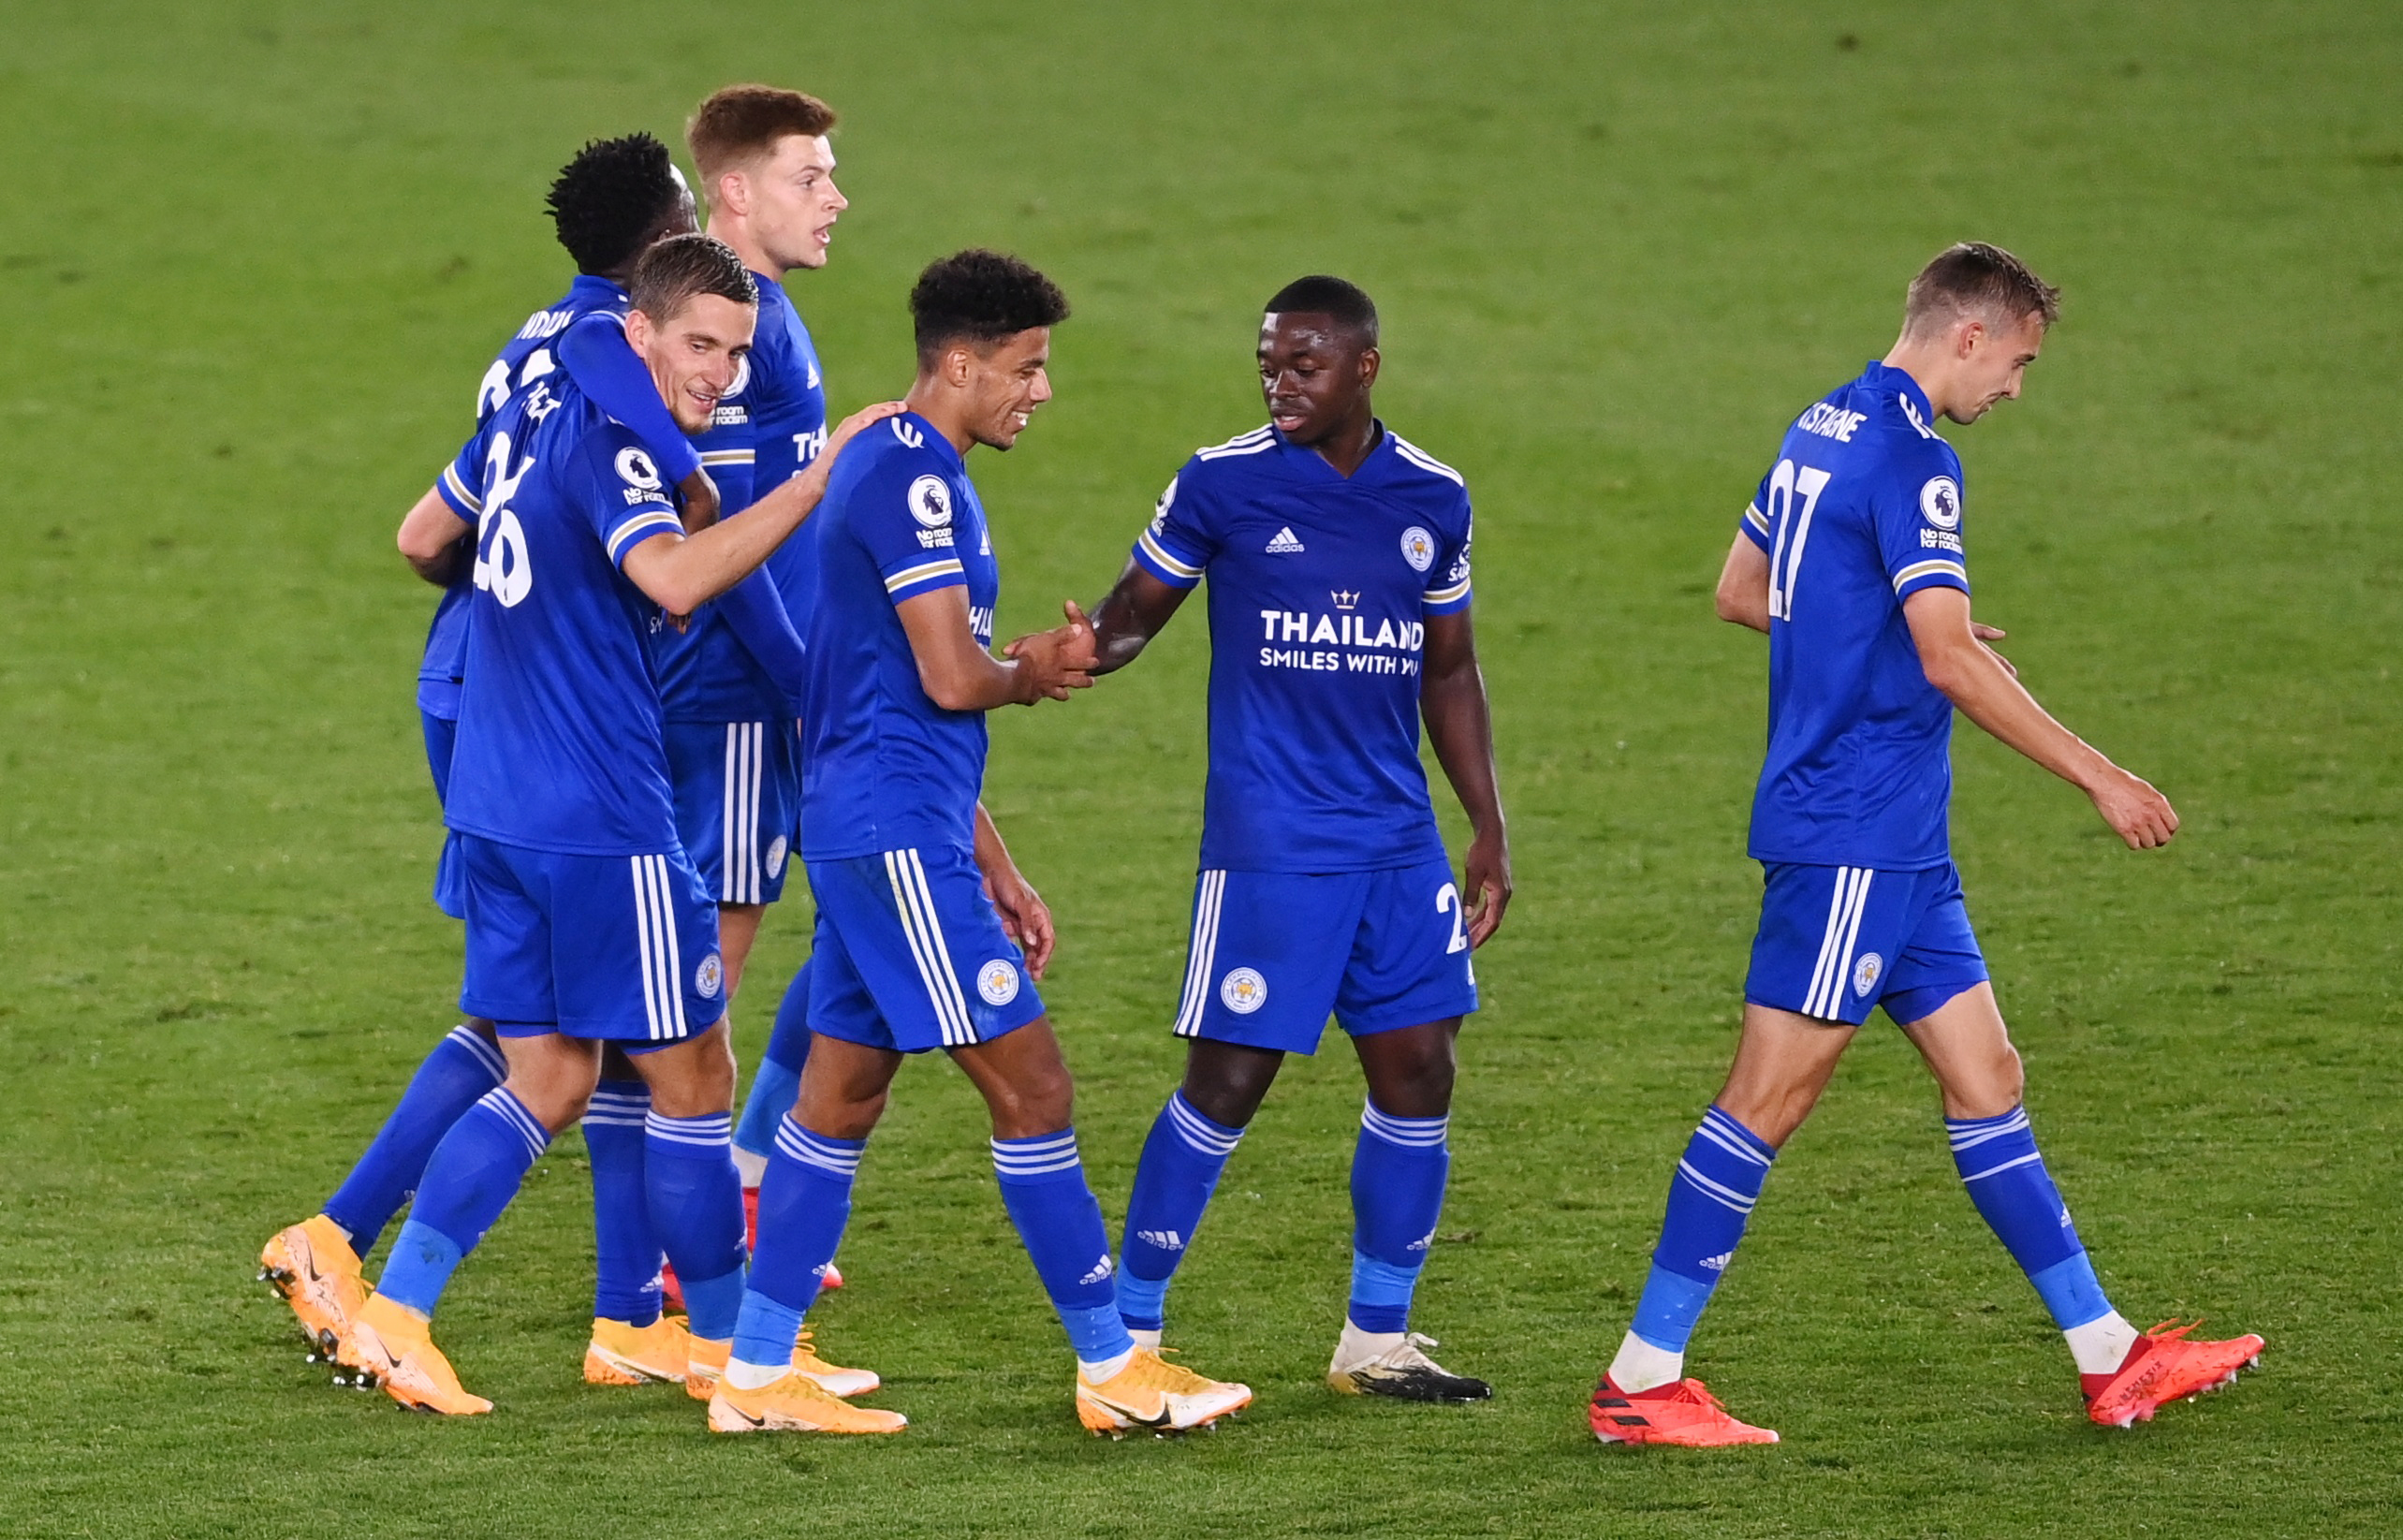 Leicester City's Dennis Praet celebrates scoring their fourth goal with Nampalys Mendy, James Justin and teammates. Photo: Reuters